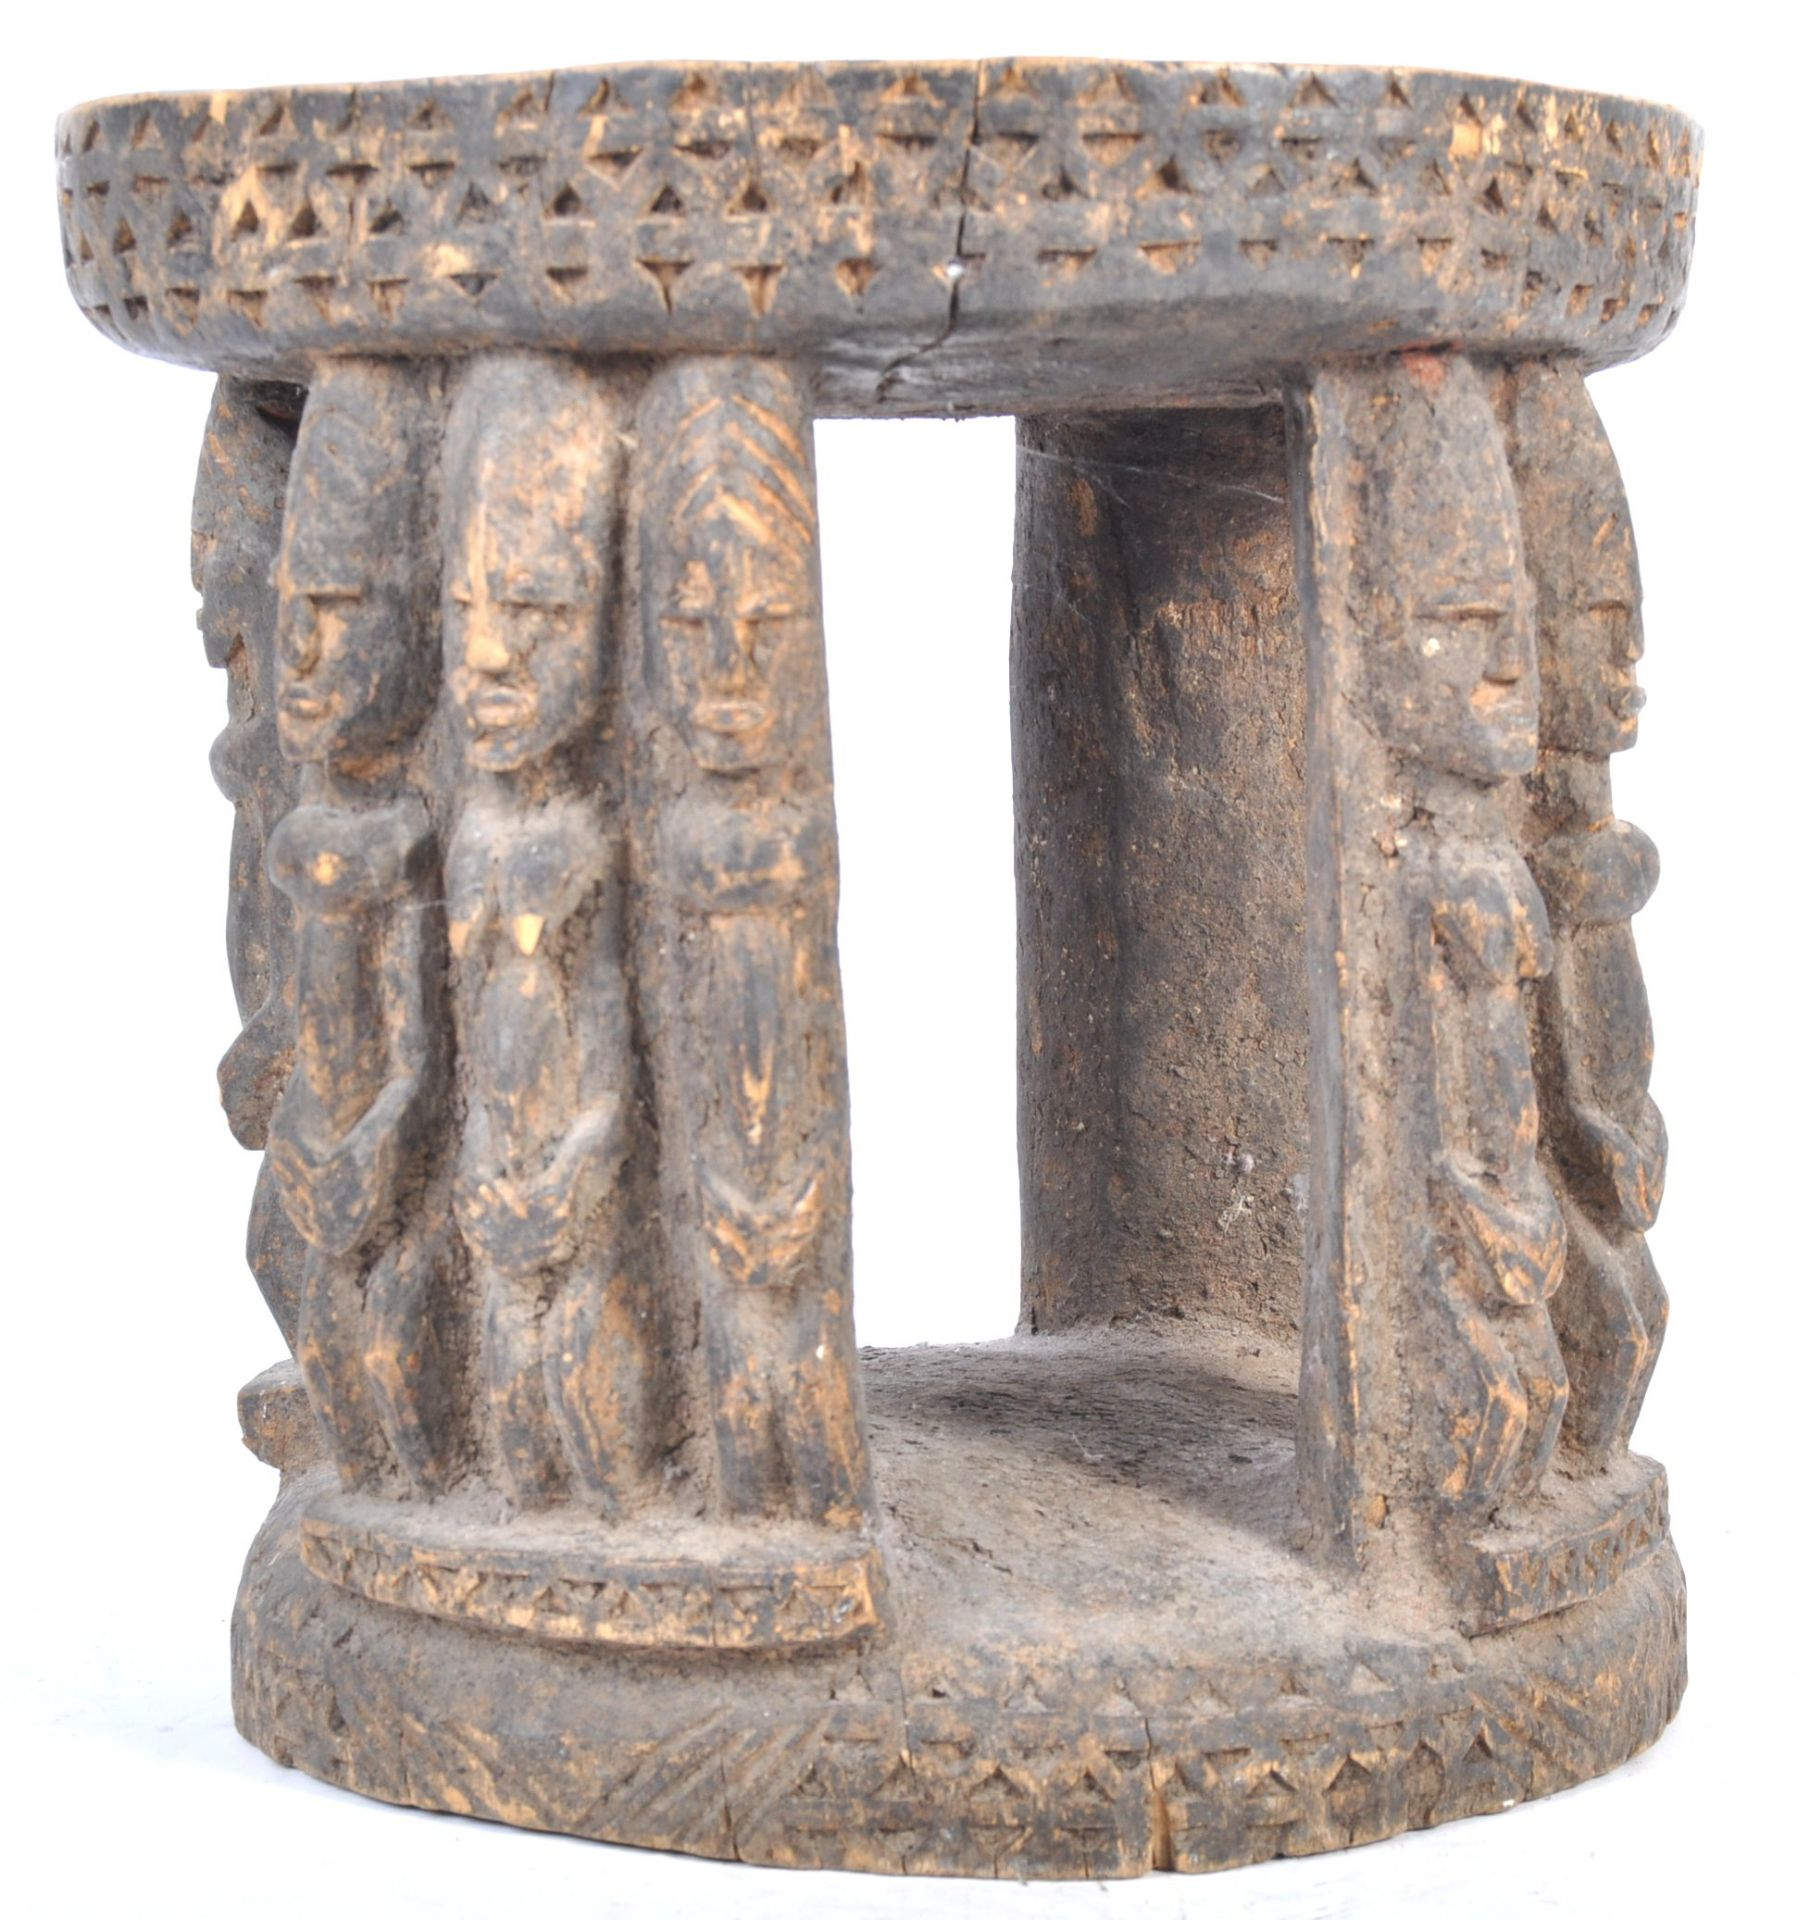 Los 574 - TRIBAL ANTIQUITIES - 19TH CENTURY BAMILEKE LEGA TRIBAL STOOL